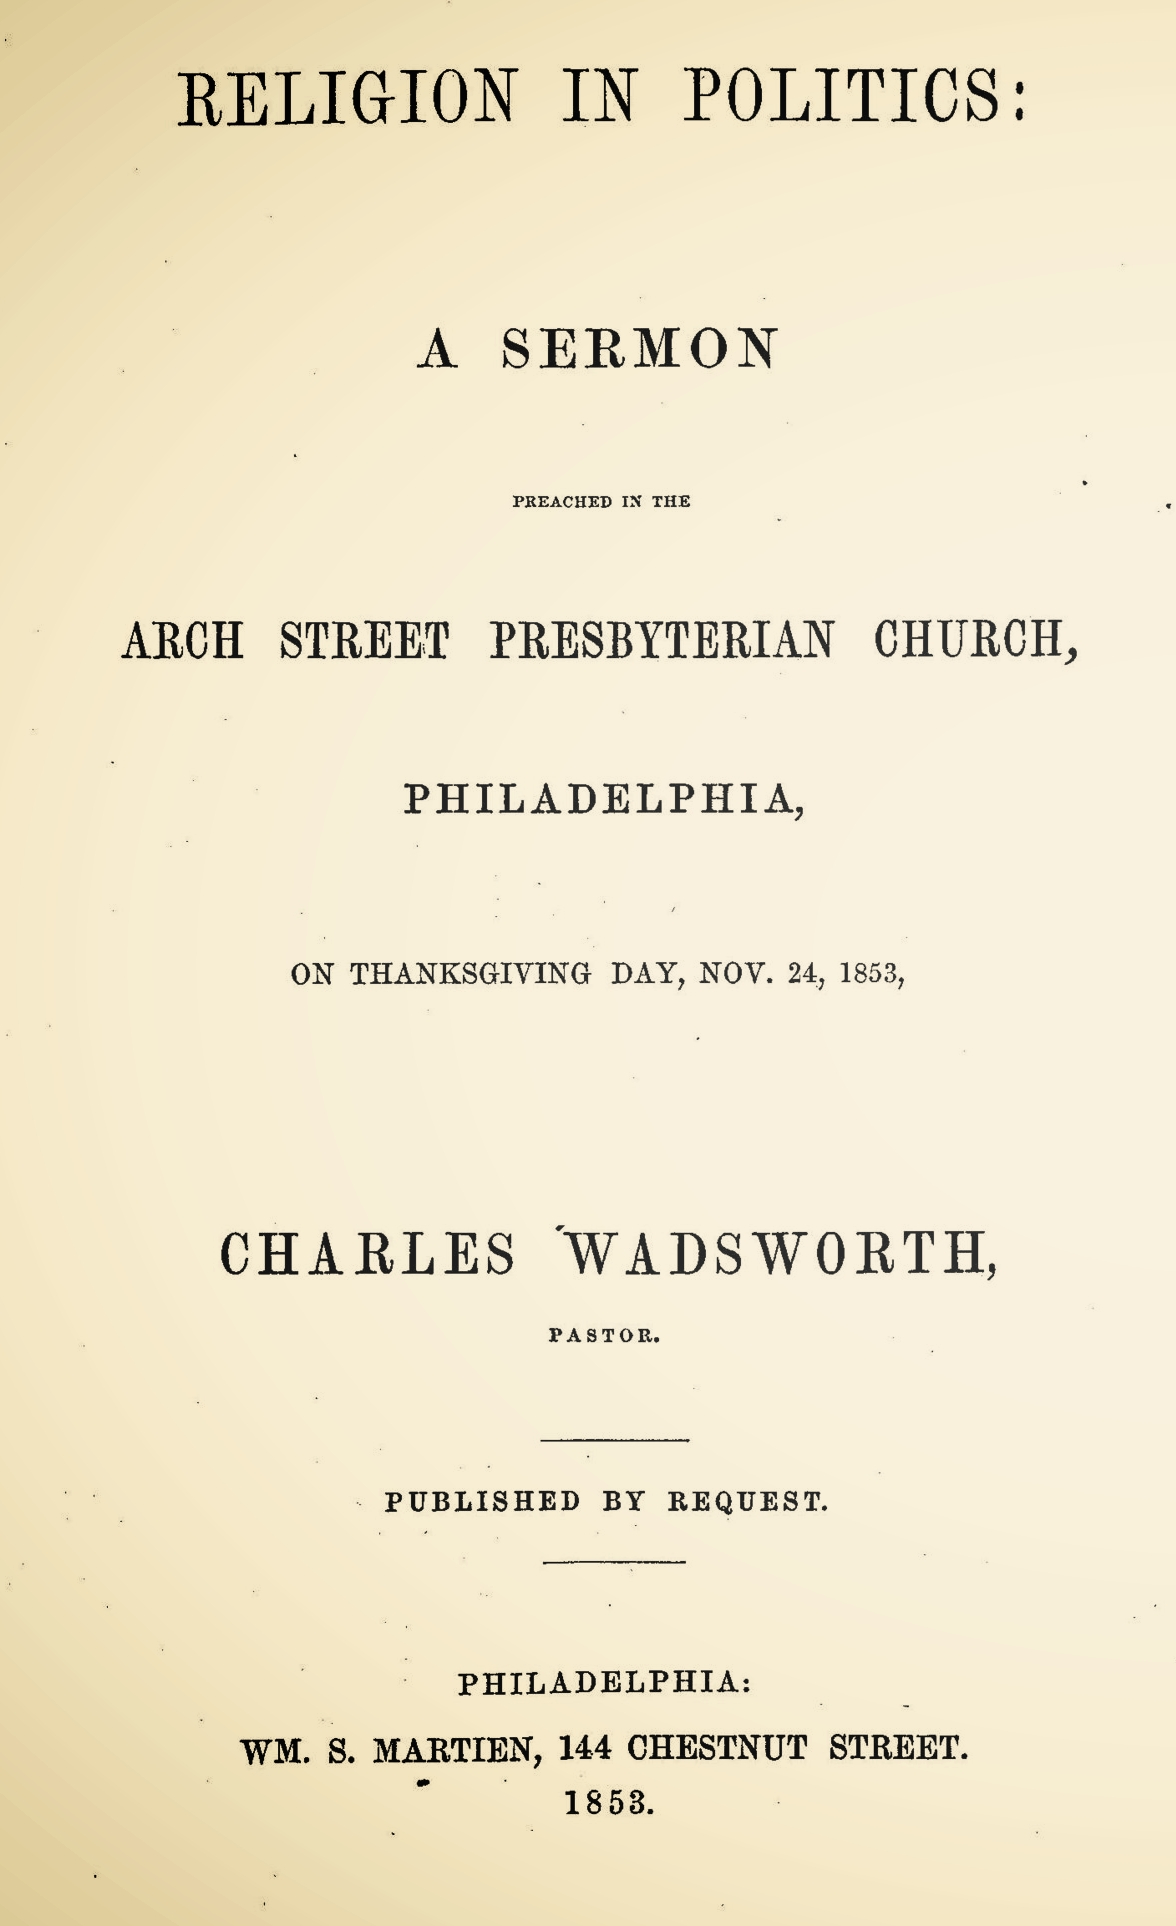 Wadsworth, Charles, Religion in Politics Title Page.jpg